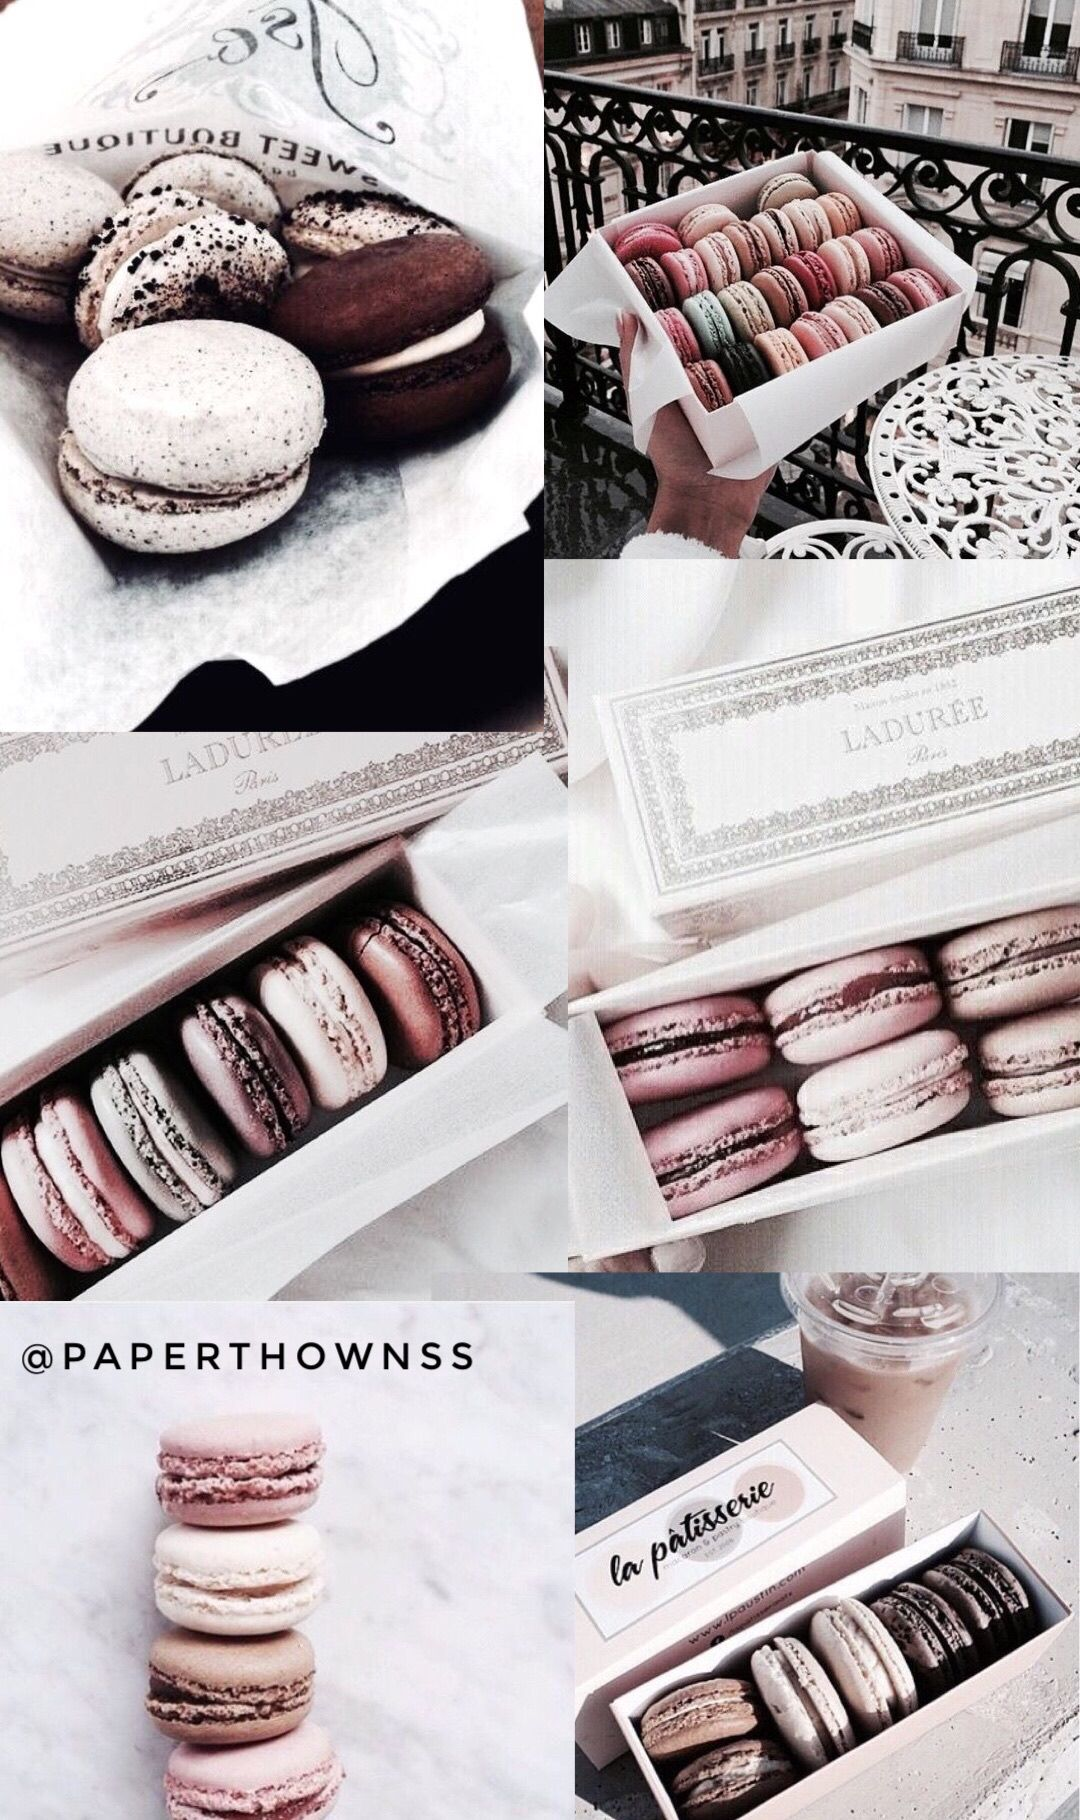 Macaron Wallpaper Collage By Paperthownss